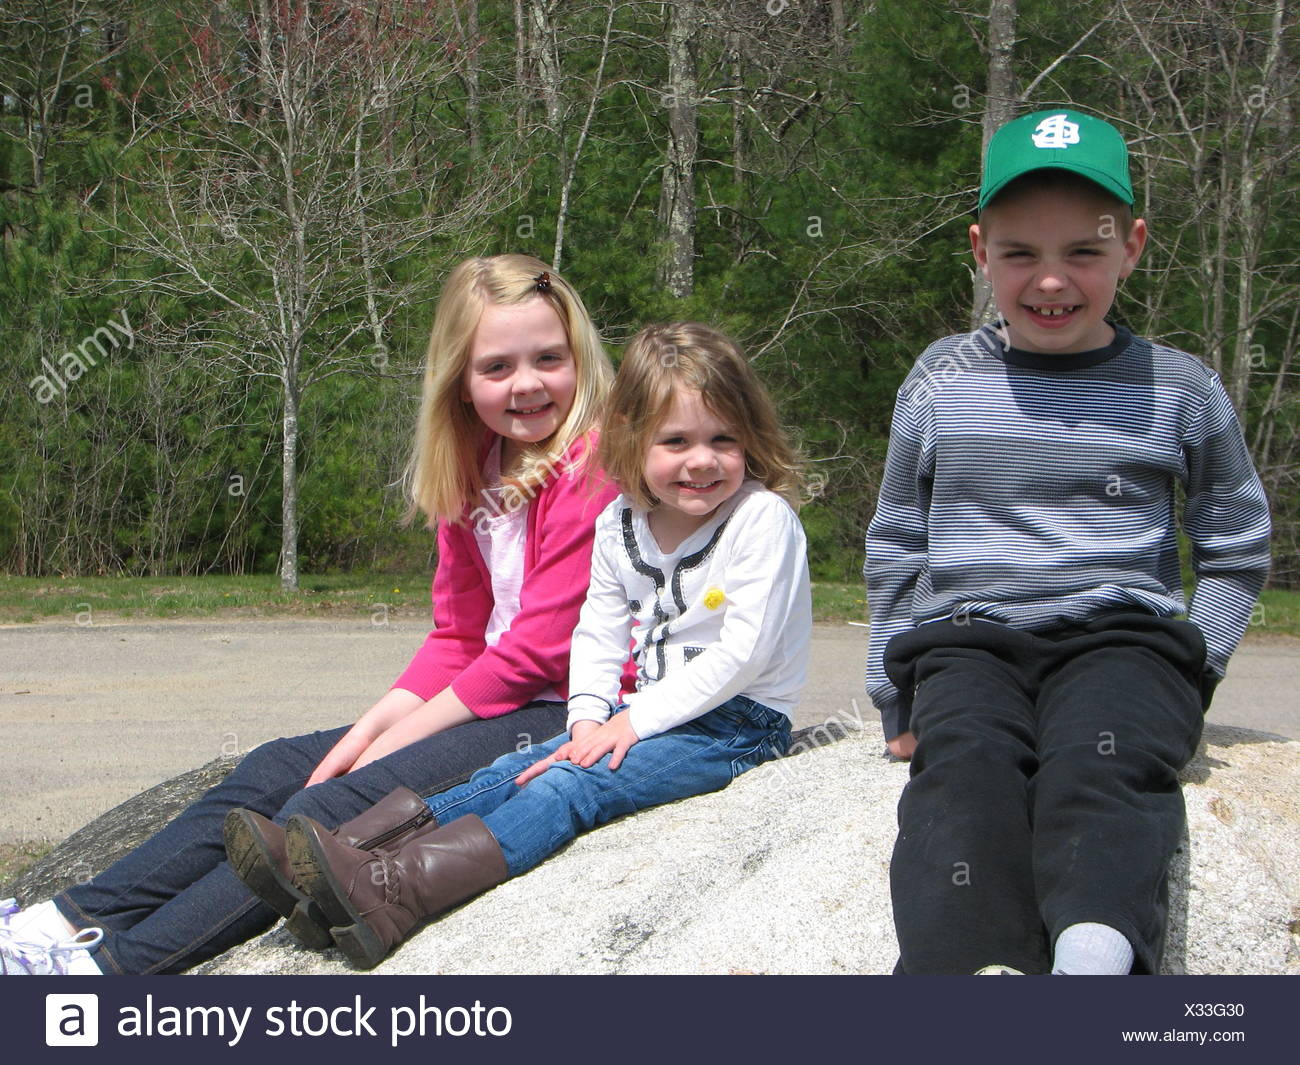 Three smiling children (8-9, 2-3, 6-7) sitting on boulder - Stock Image